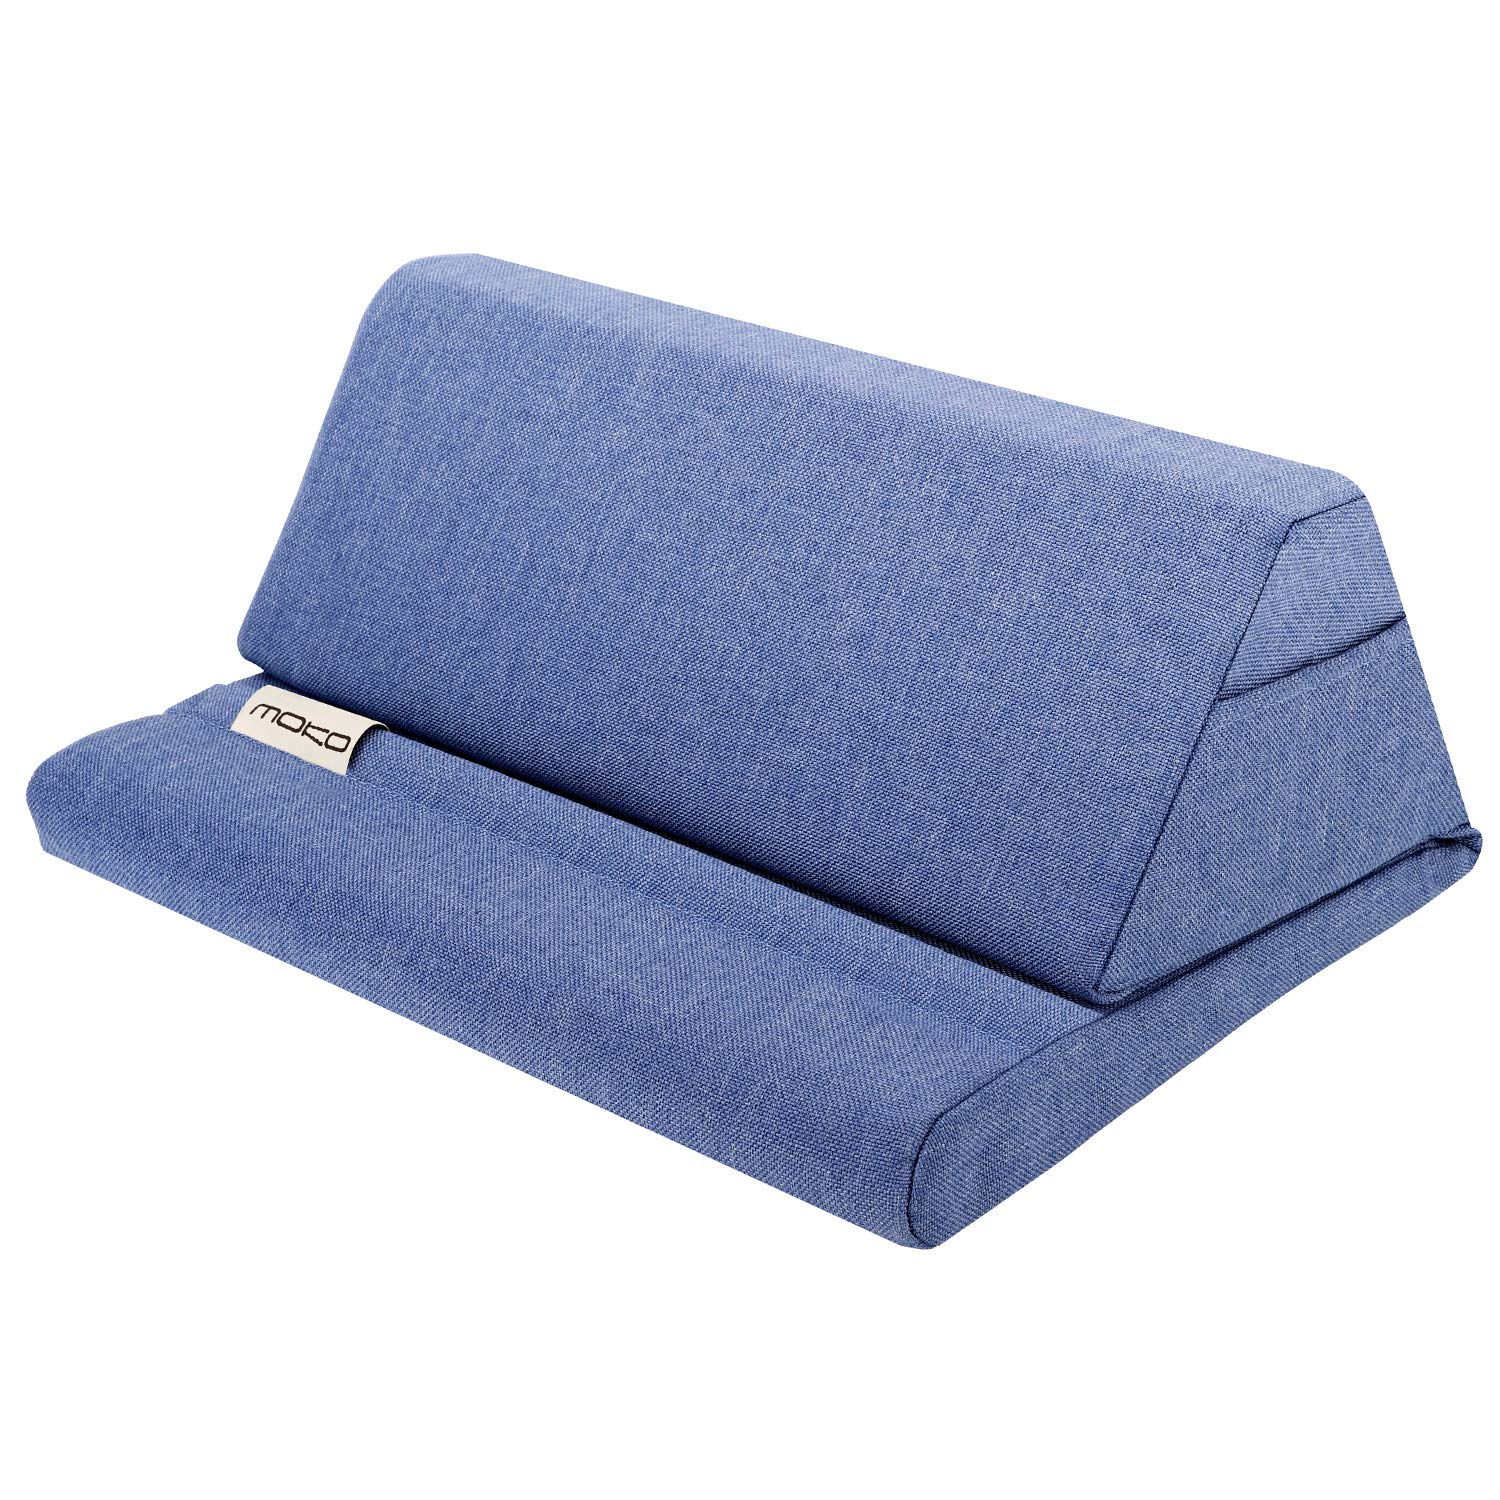 "MoKo Tablet Pillow Stand, Soft Bed Pillow Holder Fits up to 11"" Pad Compatible with iPad Pro 11 2018/10.5/9.7, Air Mini 1 2 3 4, Samsung Galaxy Tab, Google Tablet, ASUS ZenPad, E-Reader, Denim Blue"